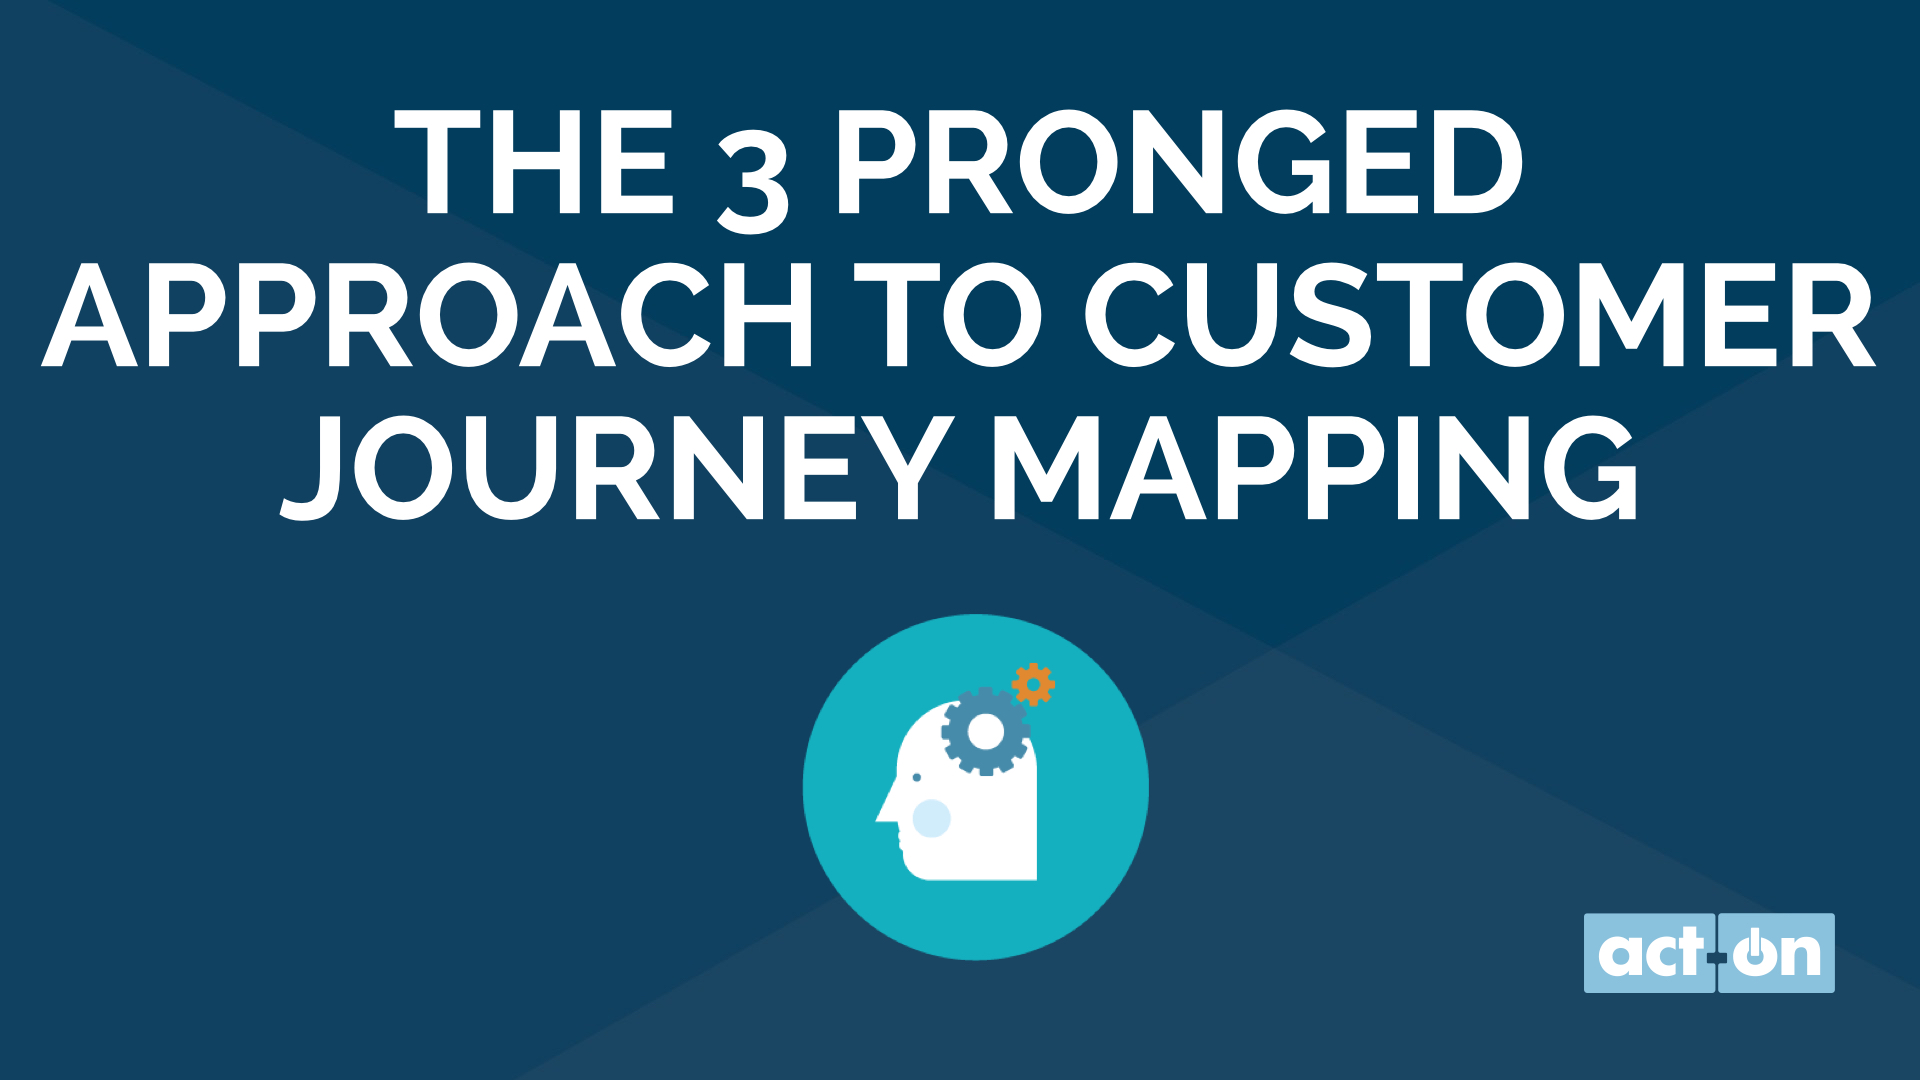 3 Pronged Approach to Customer Journey Mapping